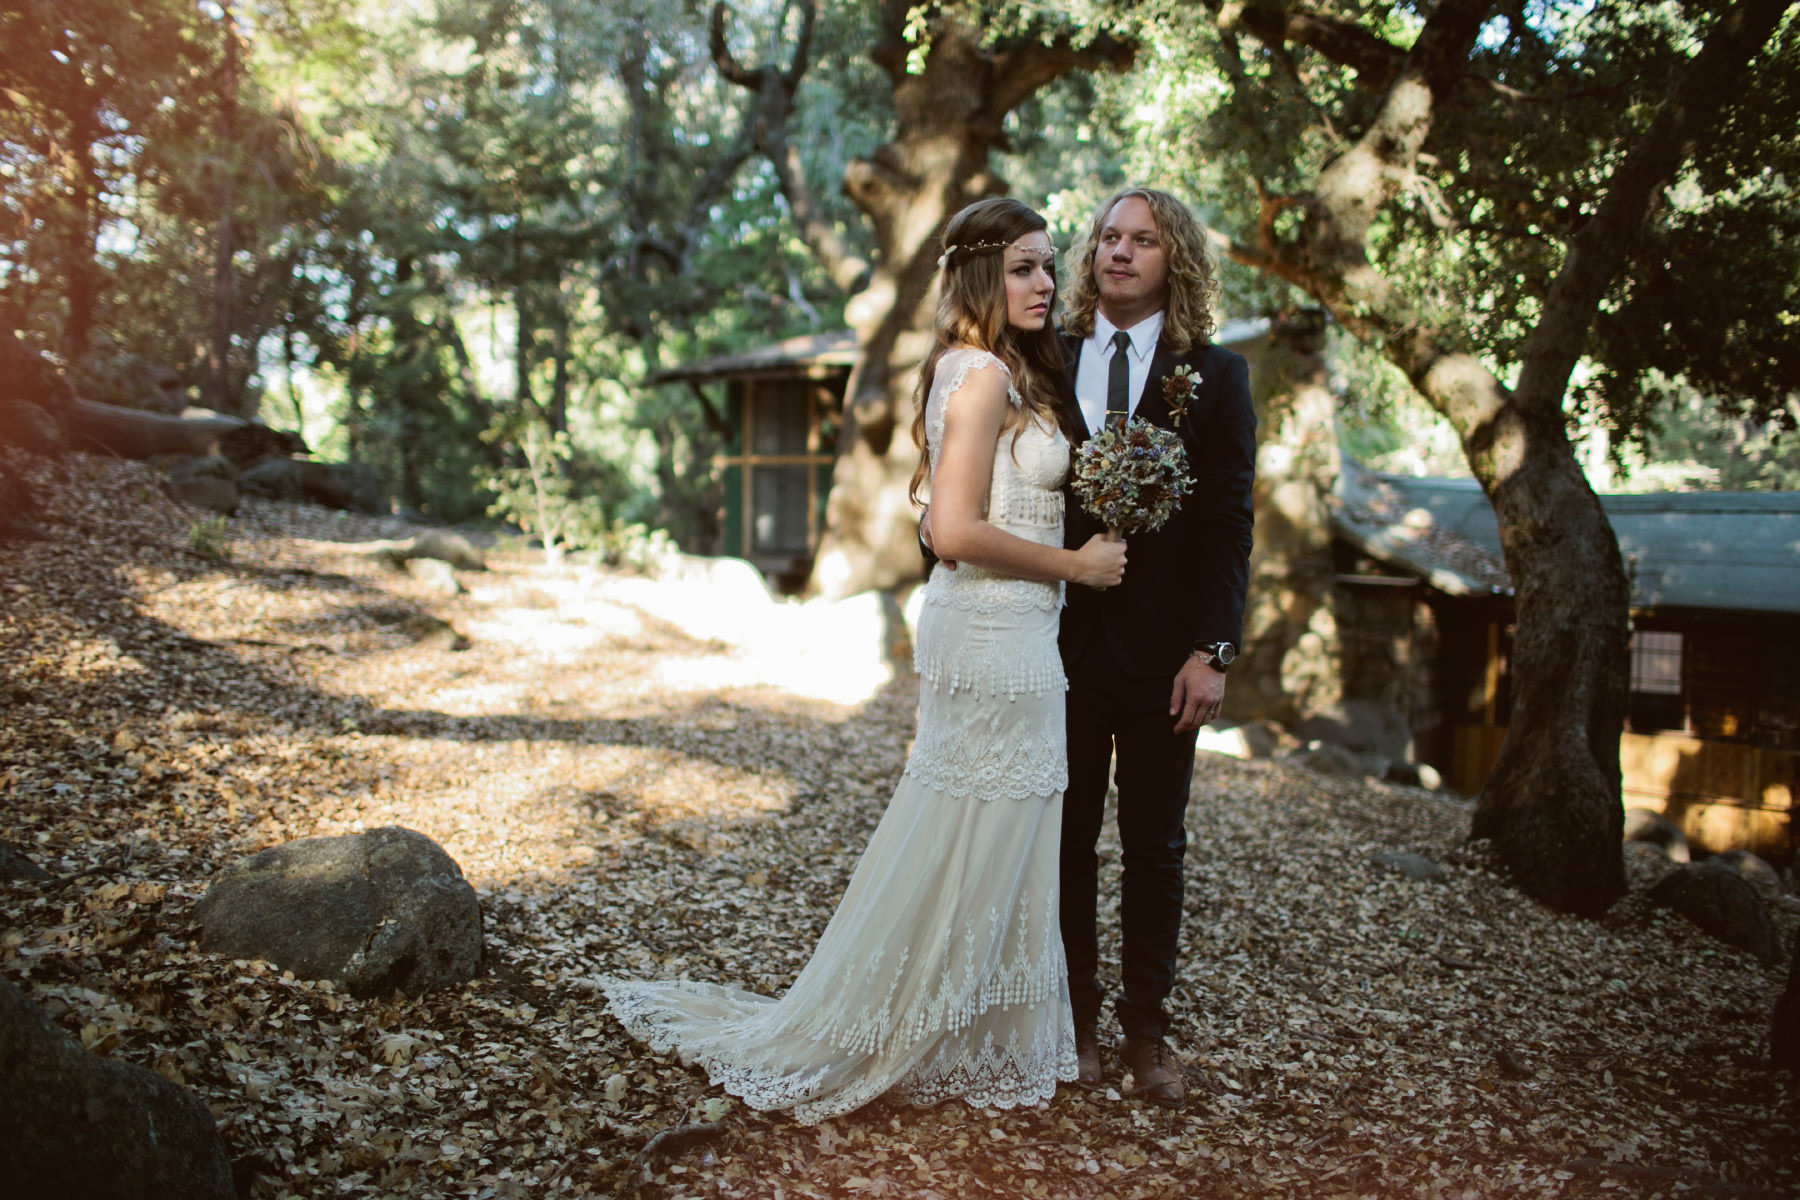 Boho bride and groom in the Baileys Palomar Resort oak grove